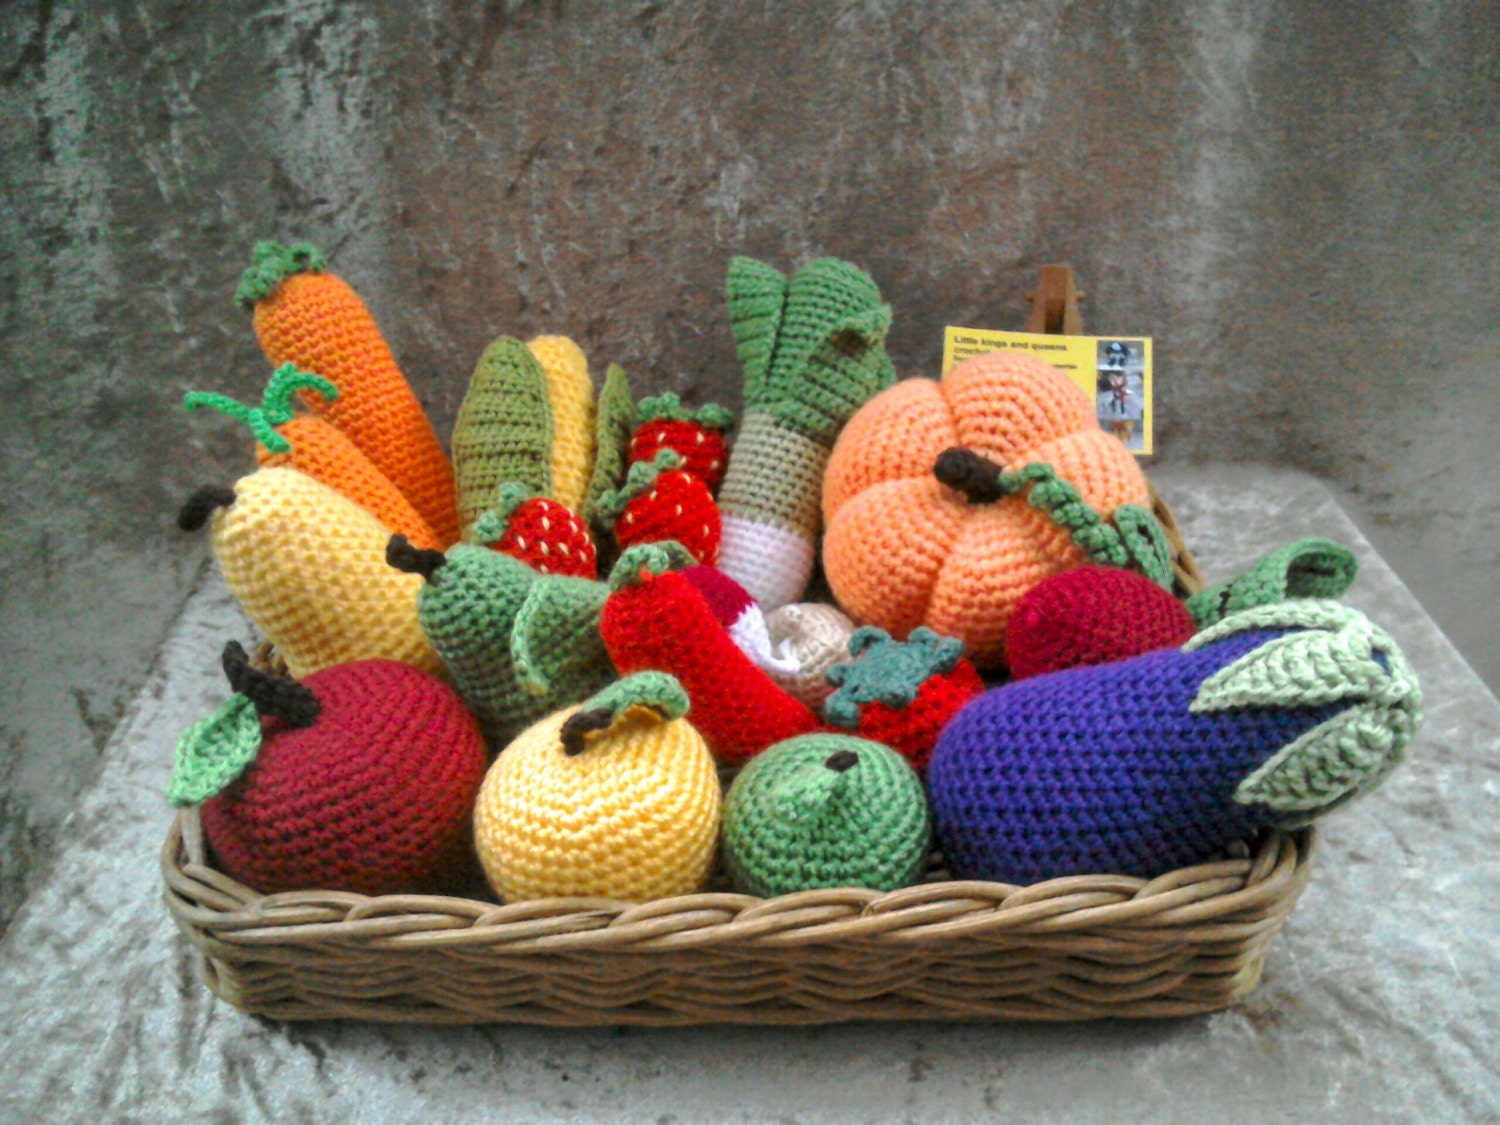 26pc Play food set crochet pretend food pretend play crochet vegetables Montessori toys tactile toys play kitchen food nursery decor